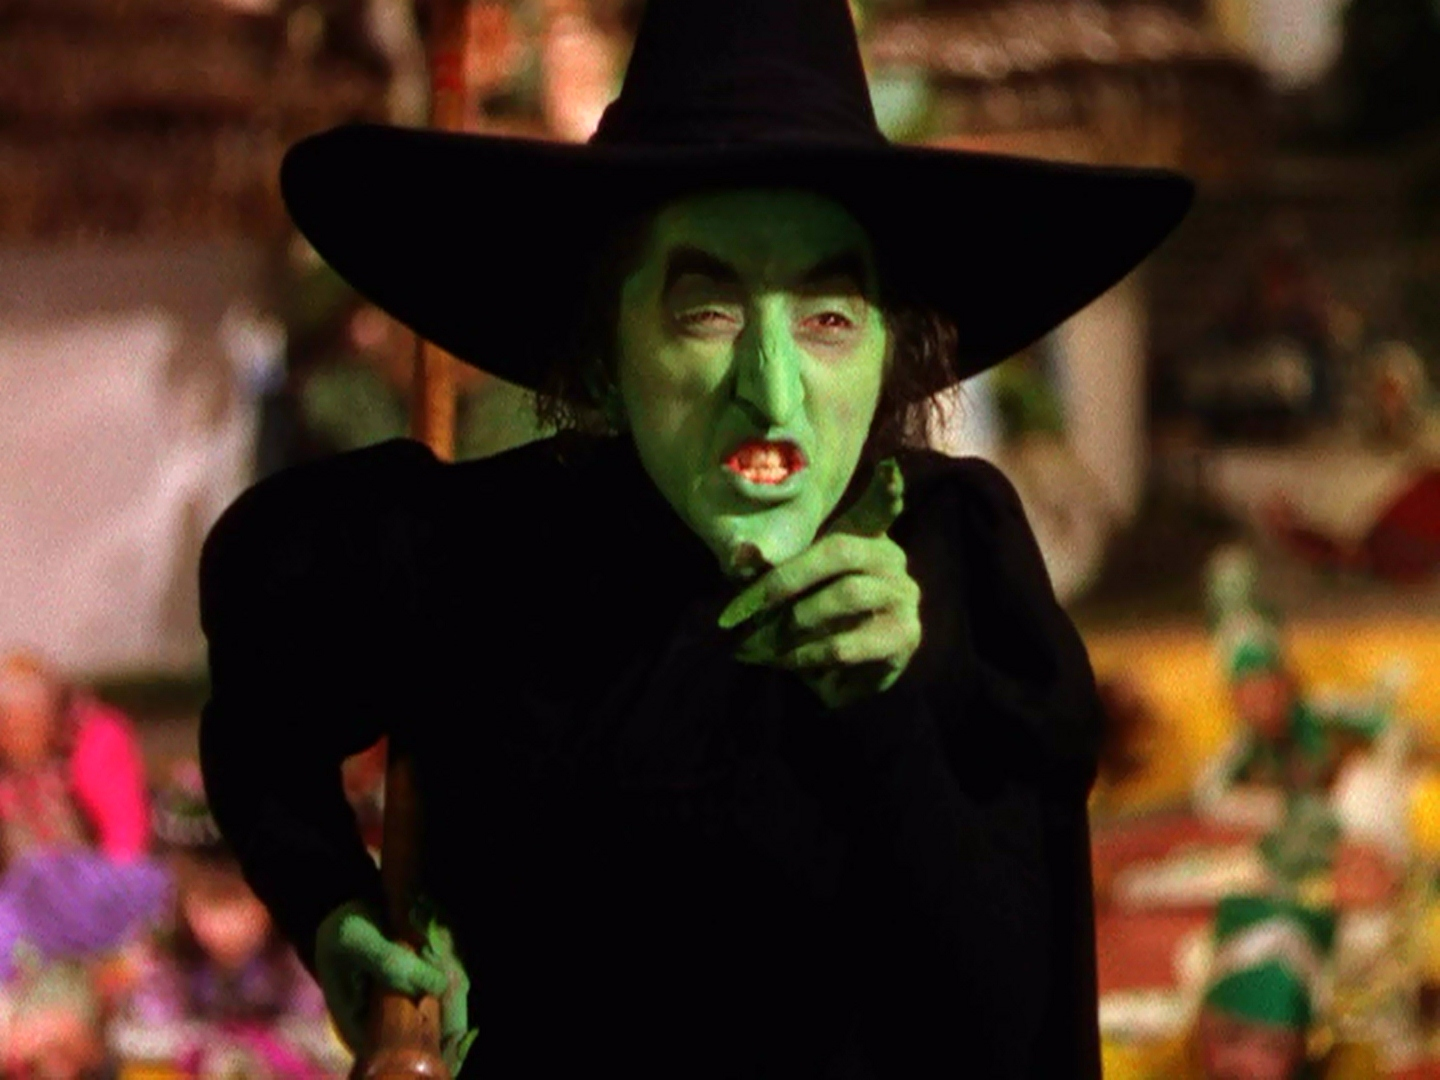 http://images1.wikia.nocookie.net/__cb20120630143957/villains/images/8/8f/Wicked_witch.jpg